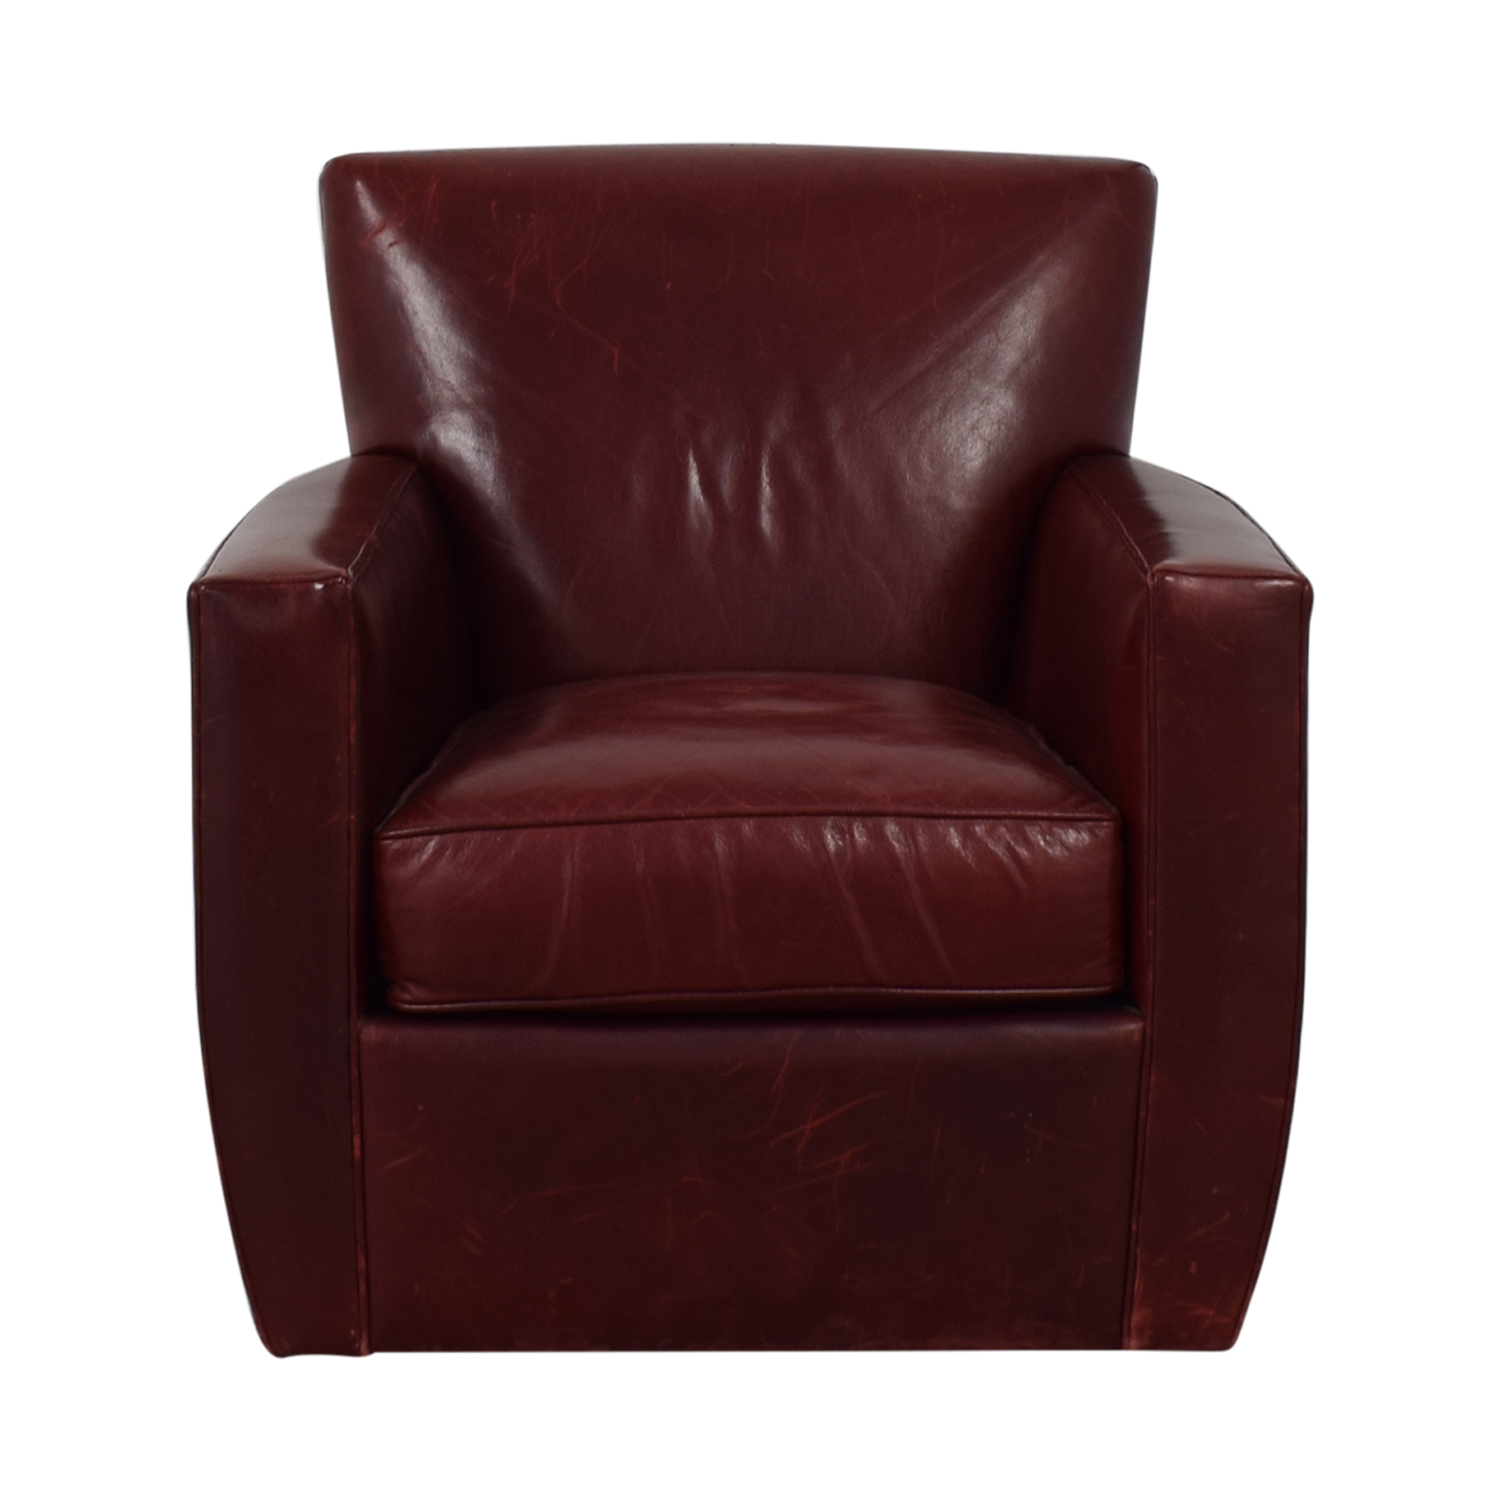 84 Off Crate Barrel Crate Barrel Swivel Red Accent Chair Chairs